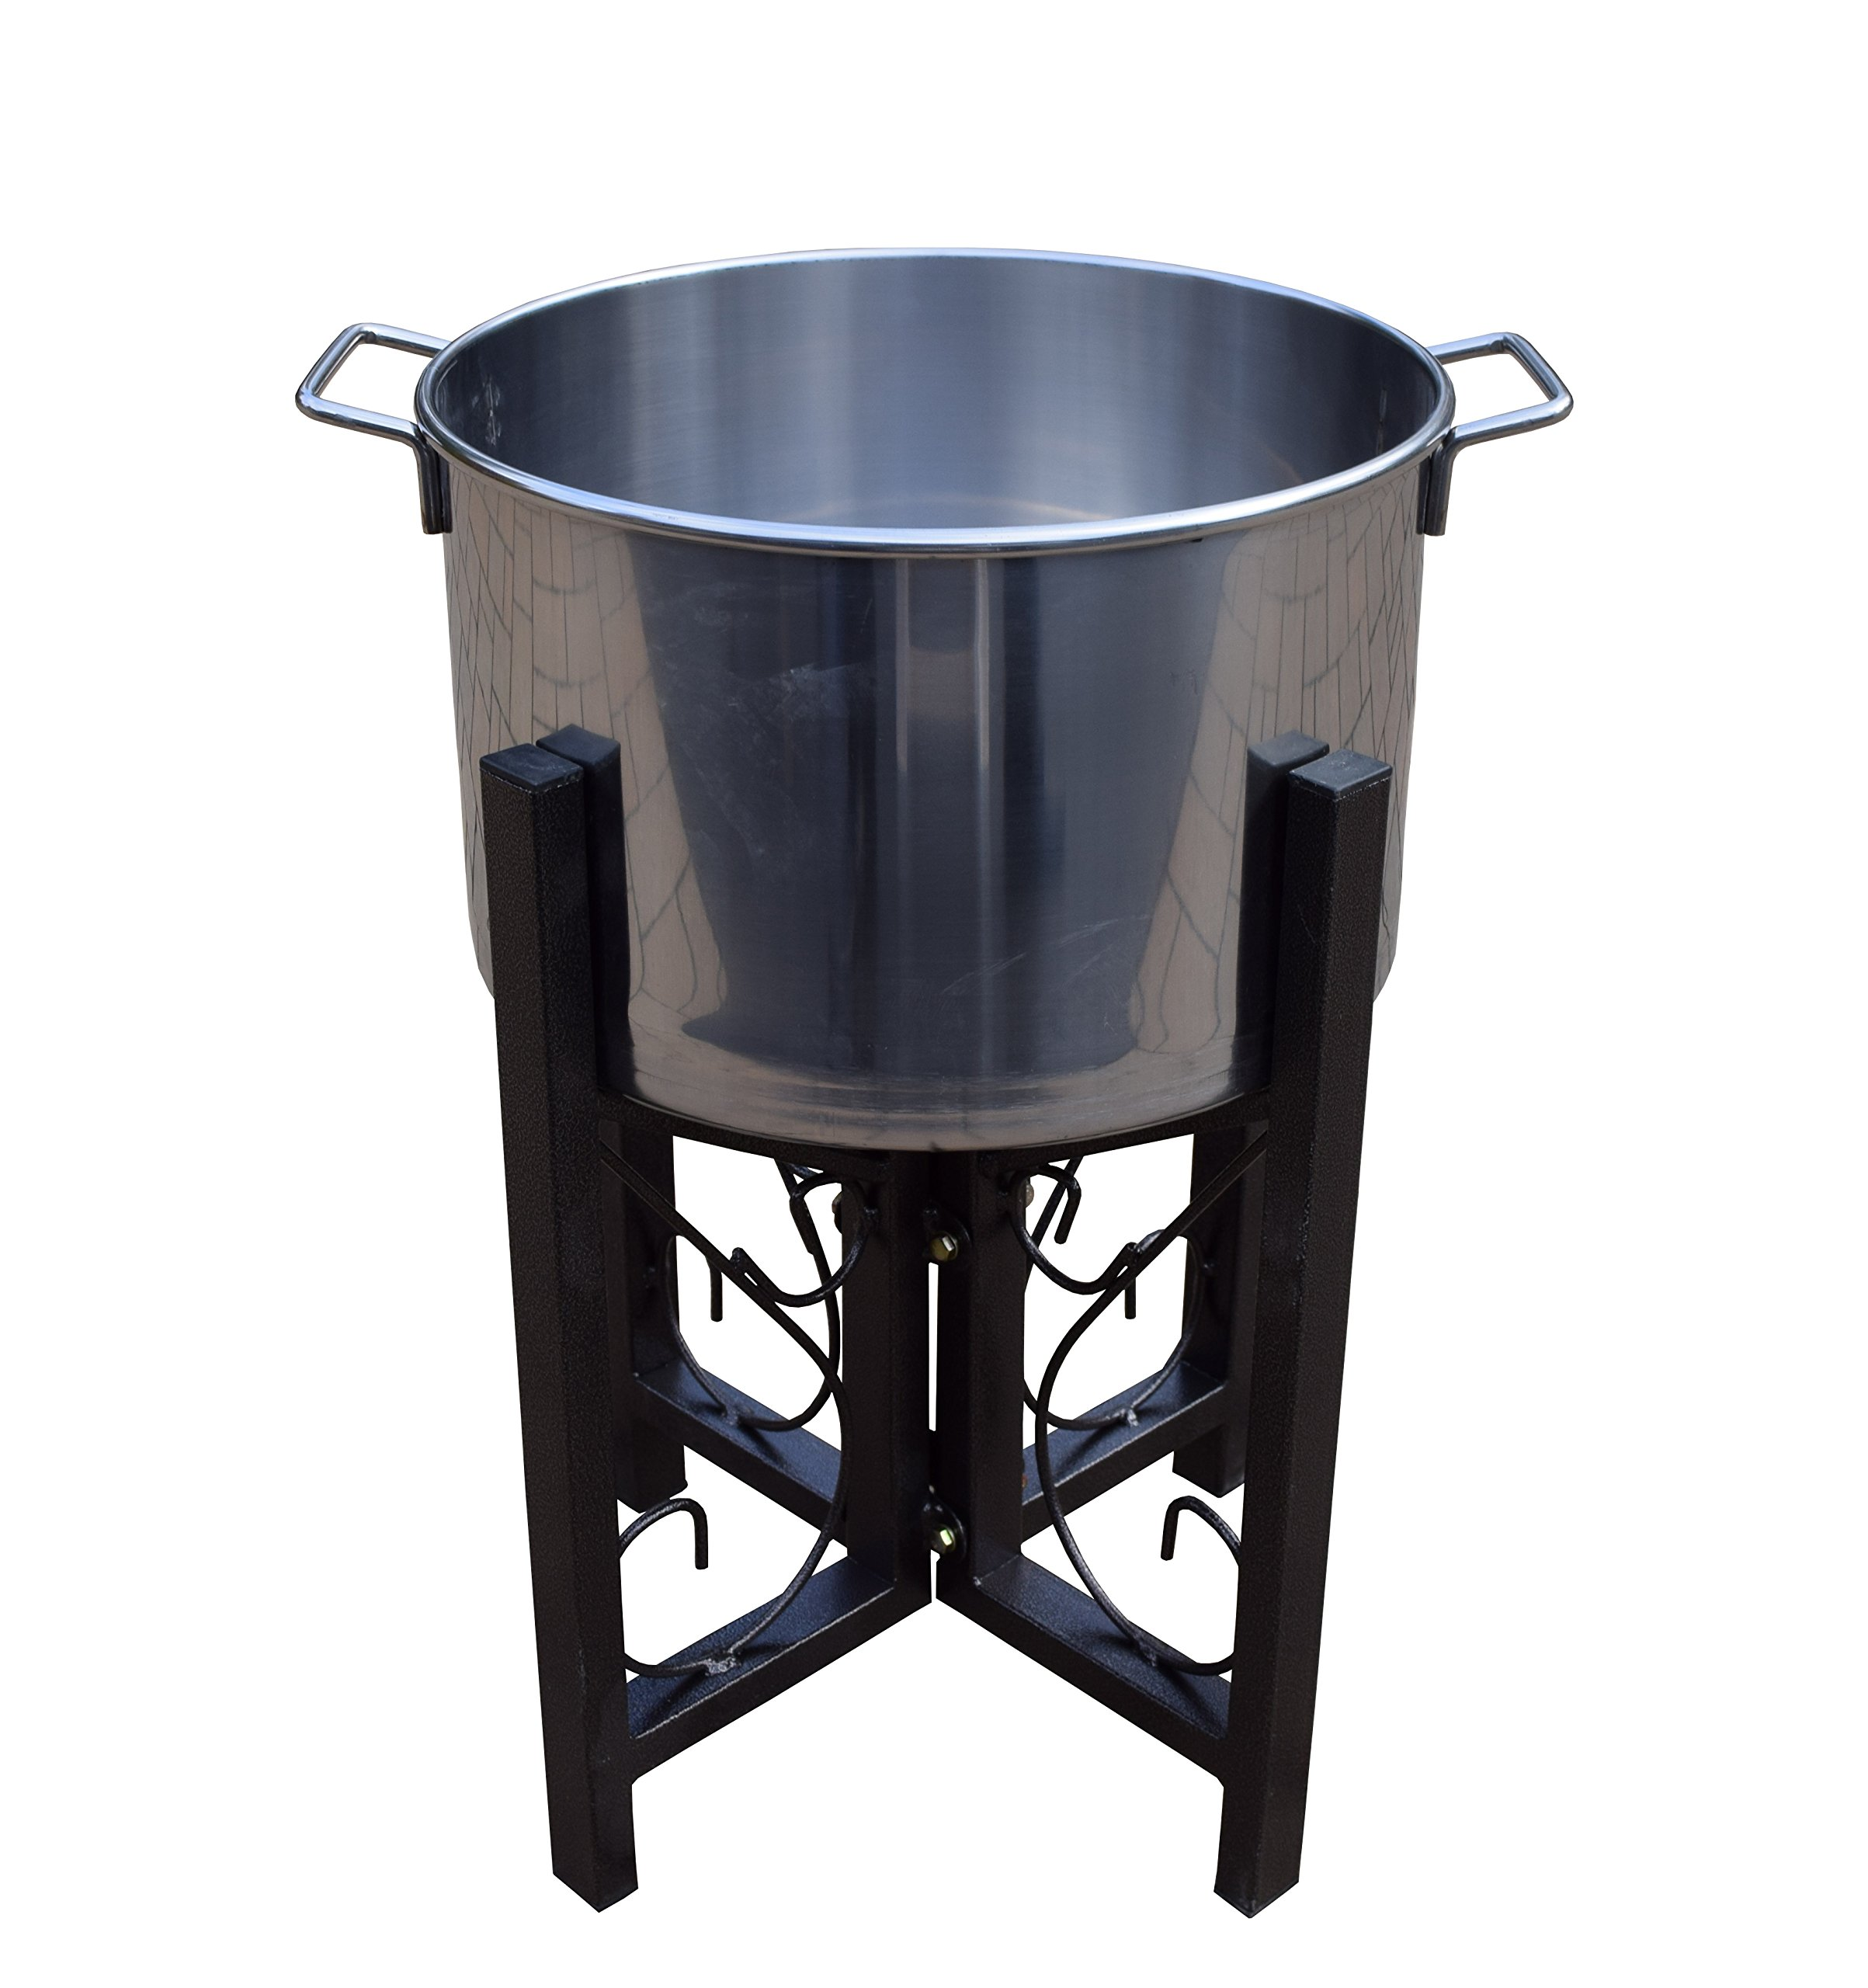 Oakland Living 91002-BK Stainless Steel Ice Bucket and Stand, 14-Inch, Black